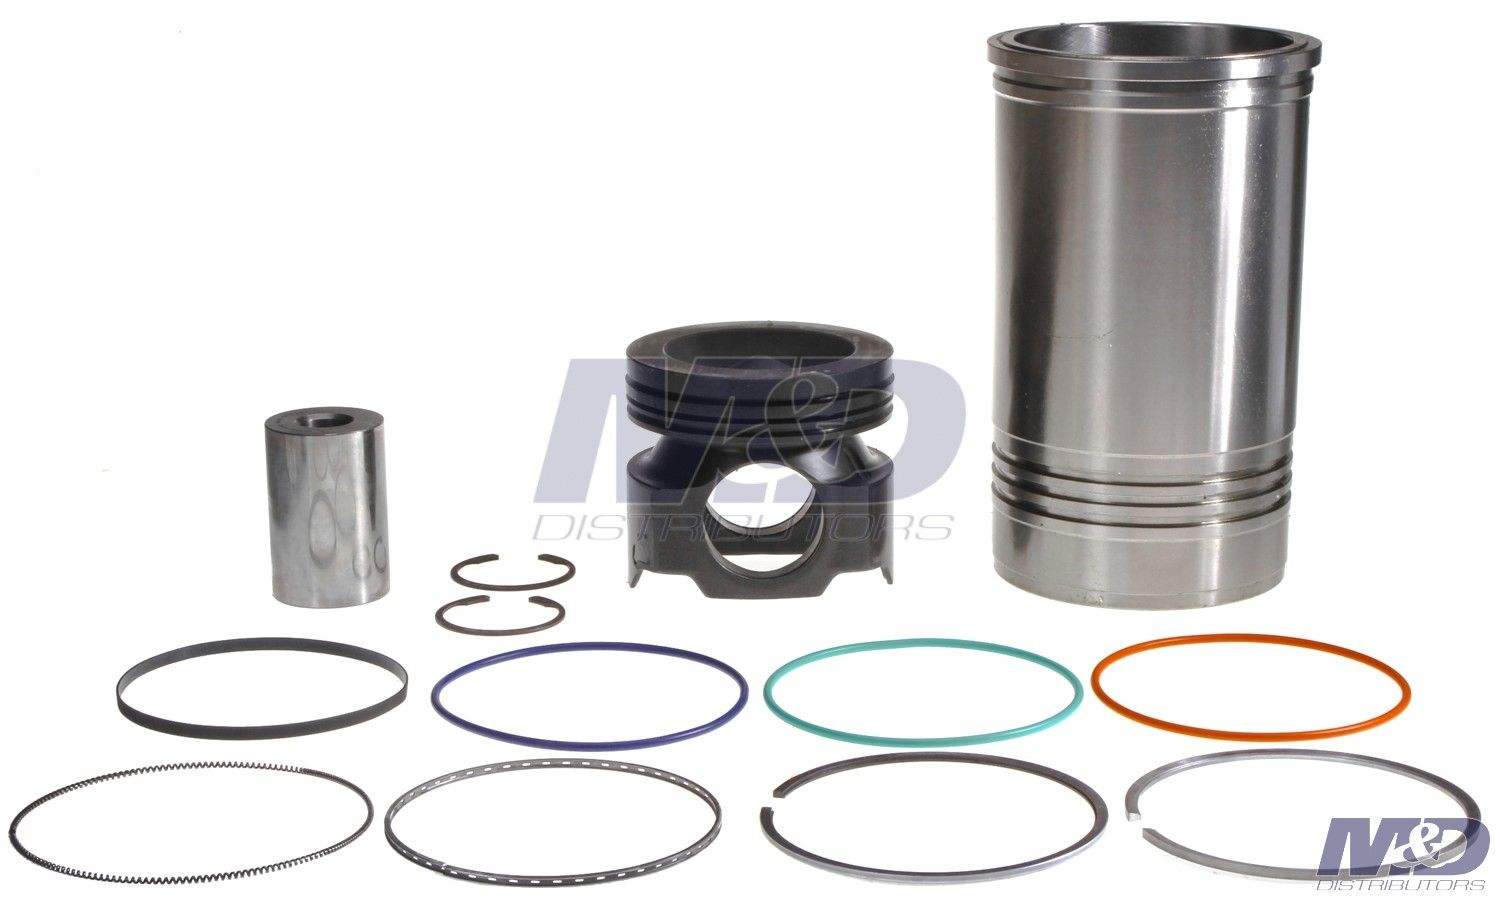 CYLINDER KIT C15 ACERT CAT 18:0 c/r MONOTHERM PISTON